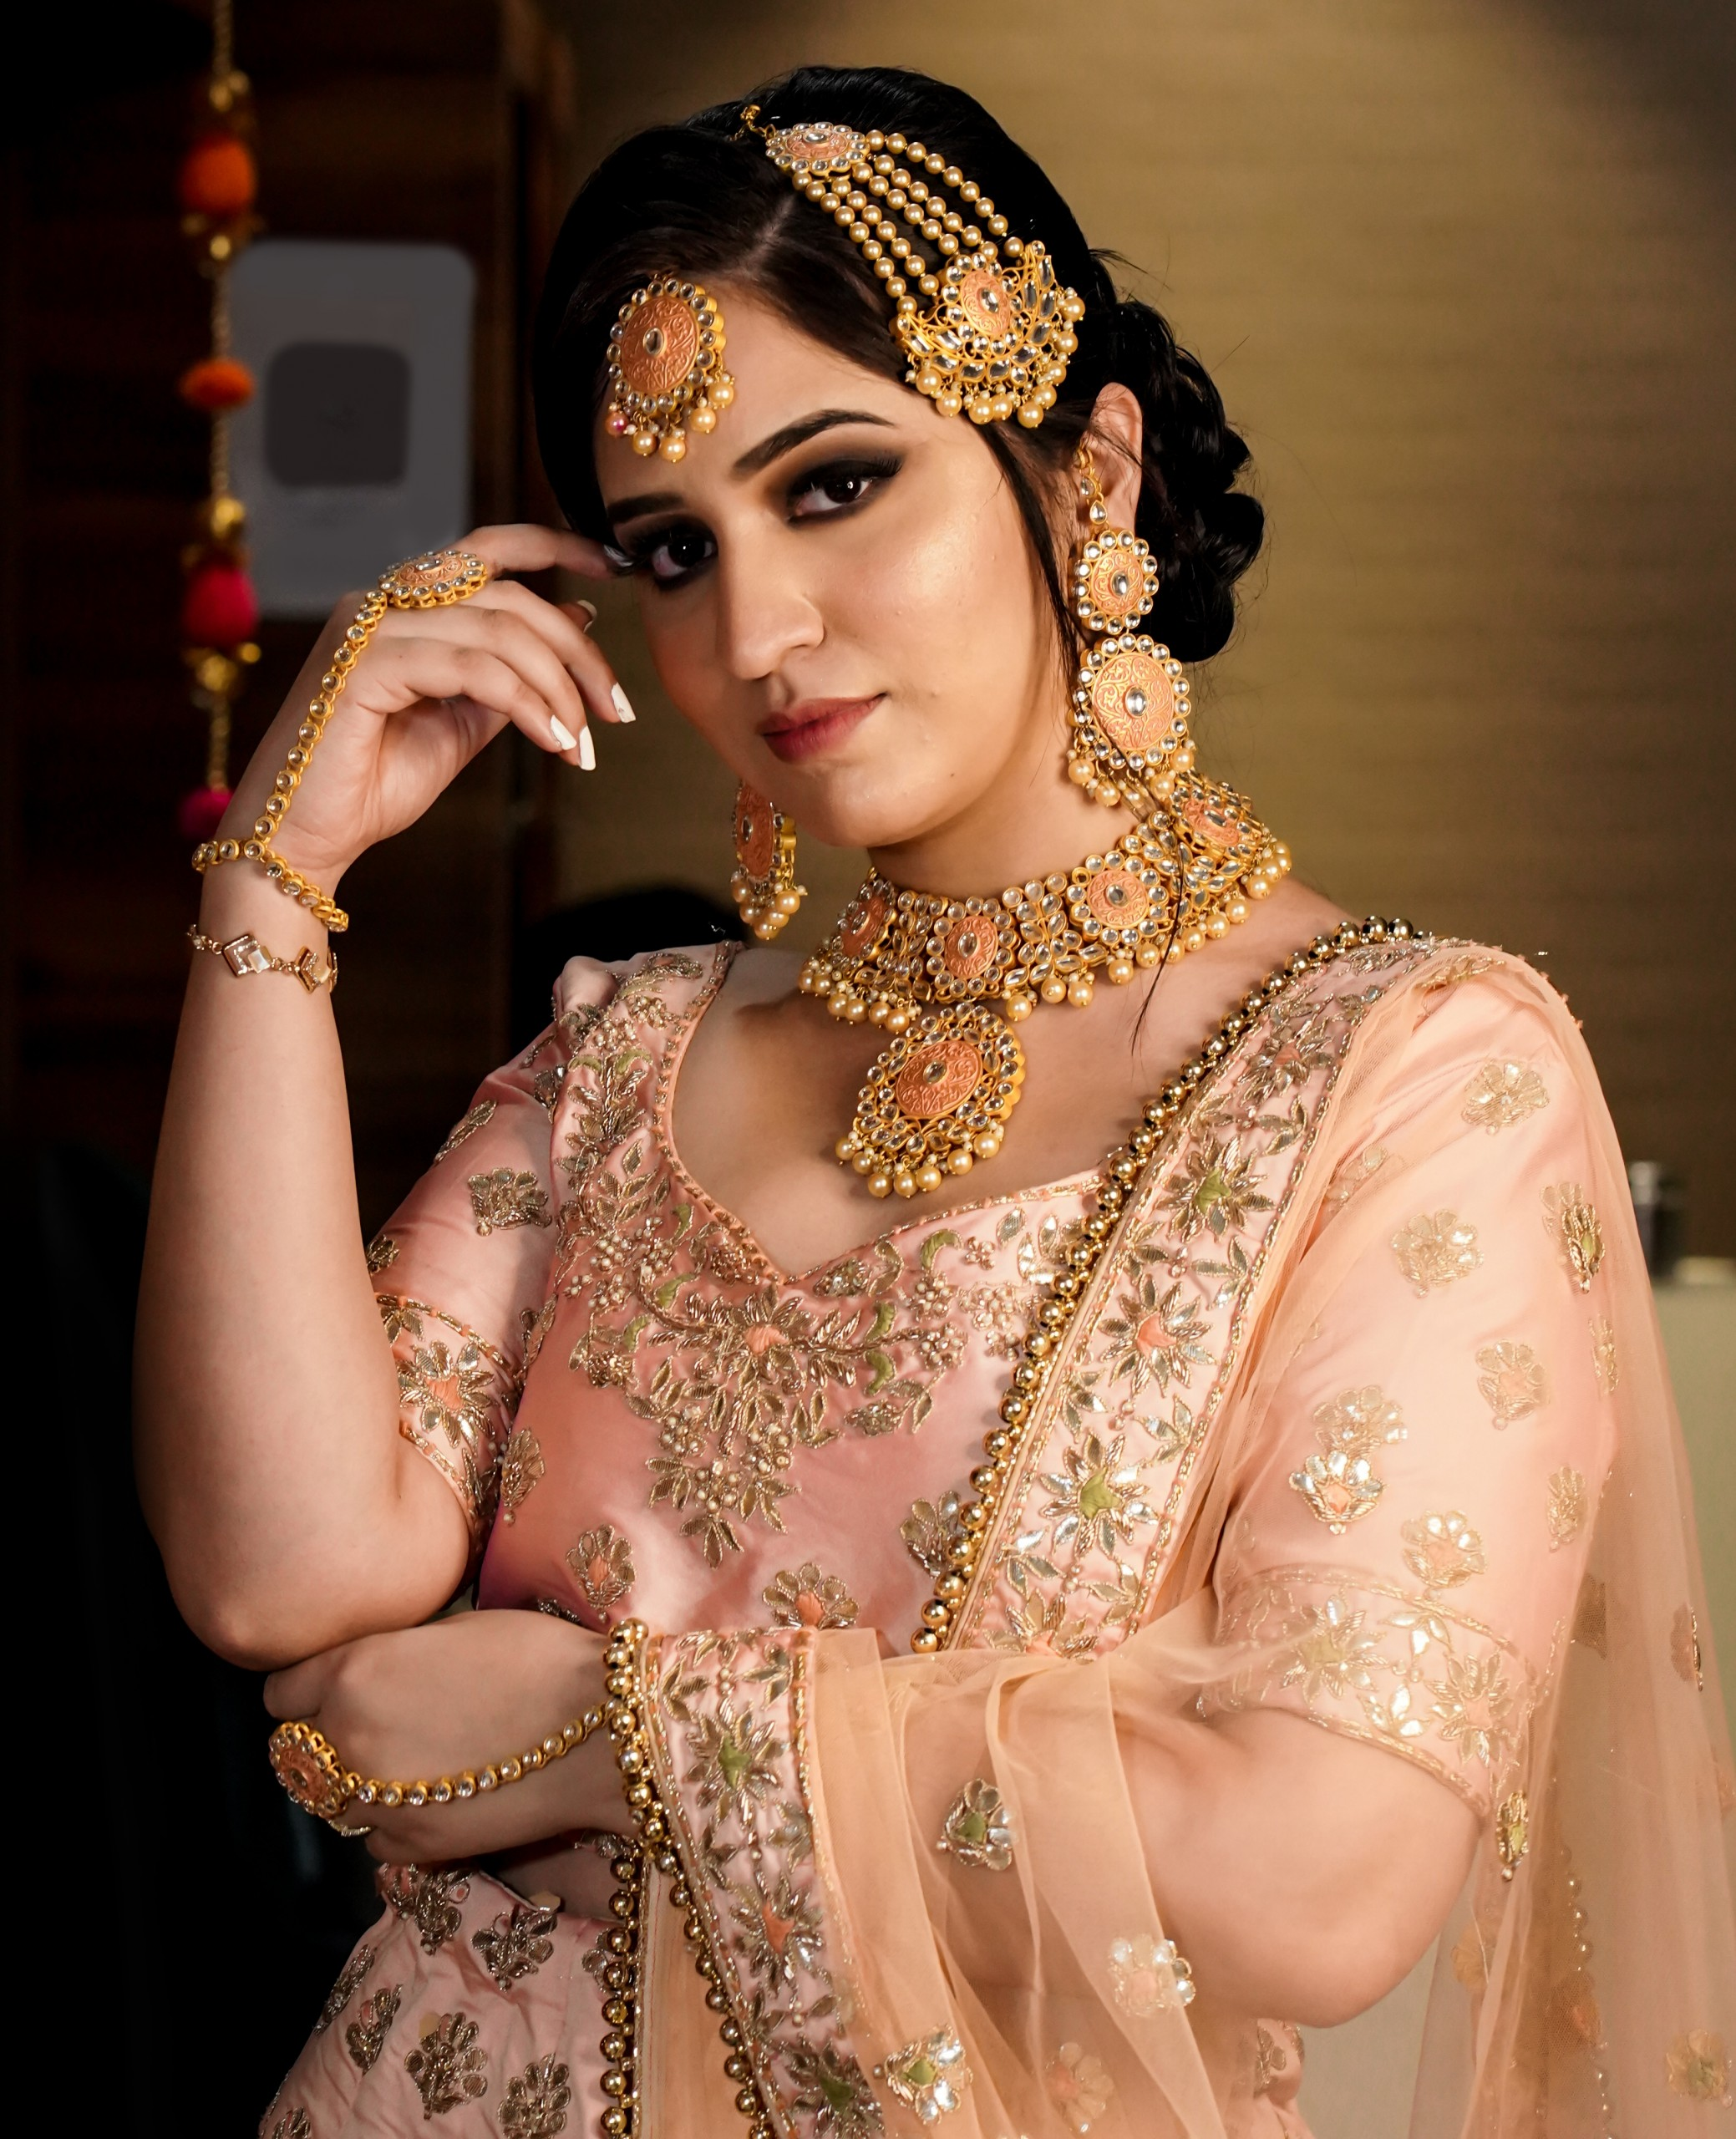 Indian bride with heavy jewelry